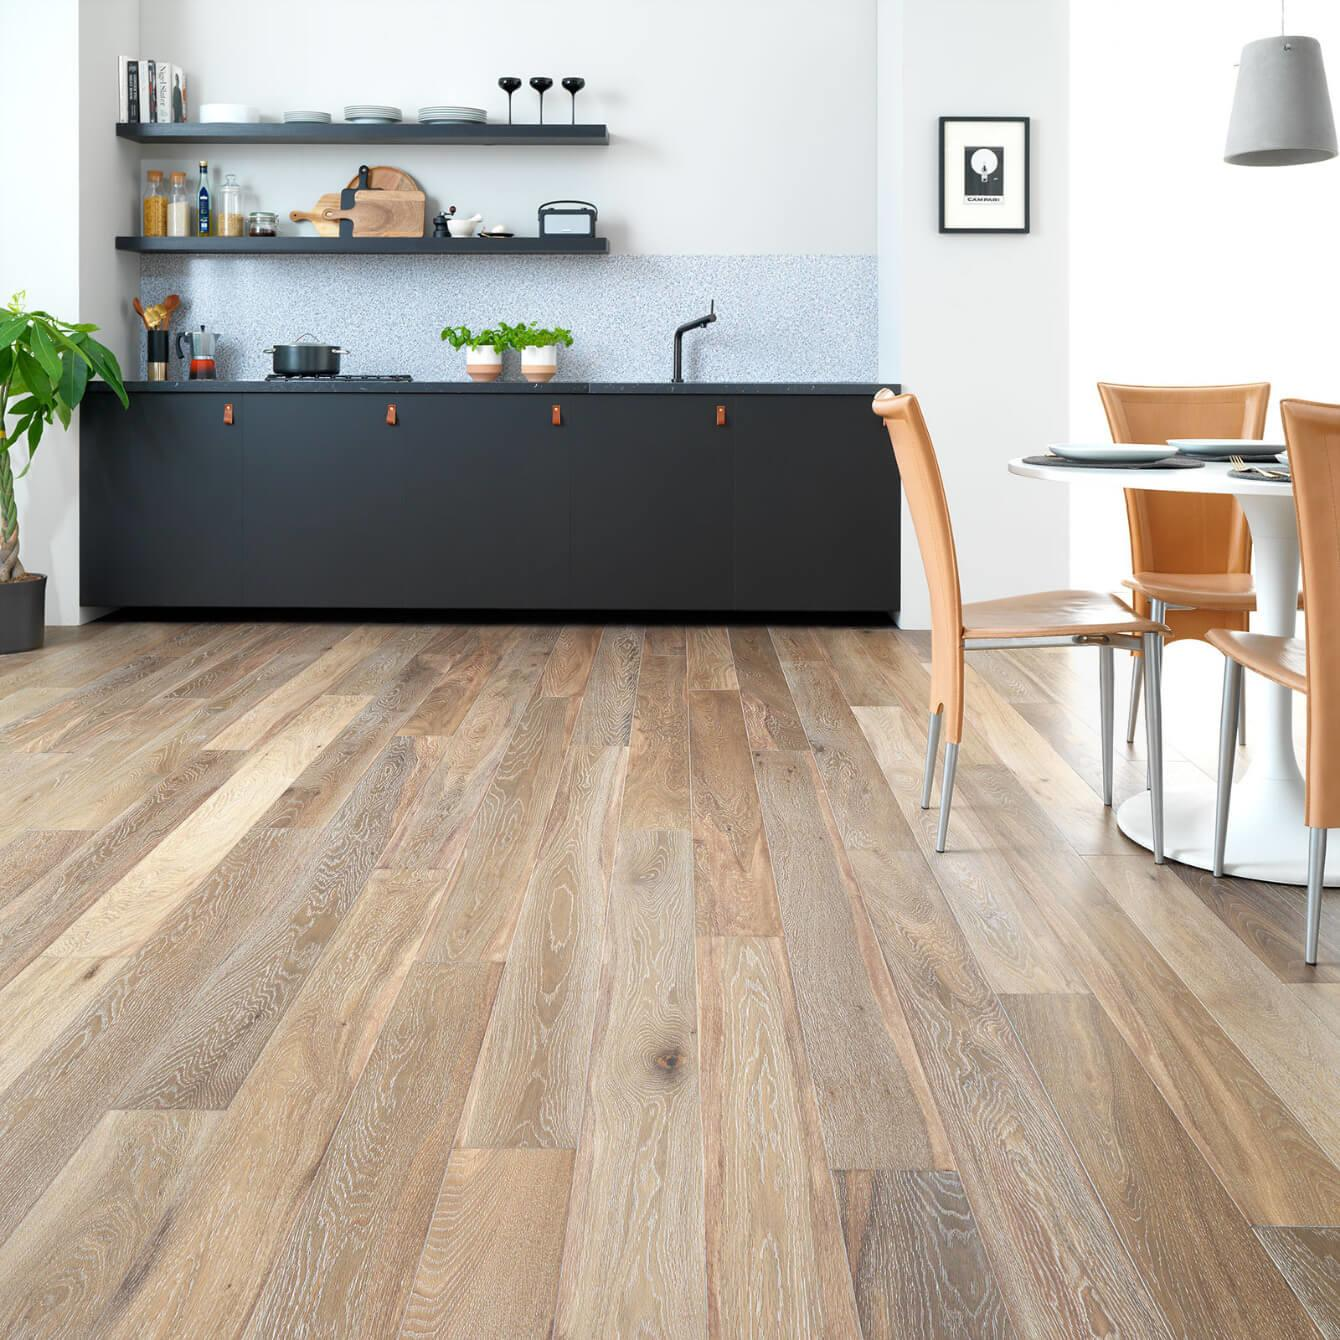 Woodpecker Harlech White Smoked Oak Engineered Wood Flooring 240mm 35-HWS-240